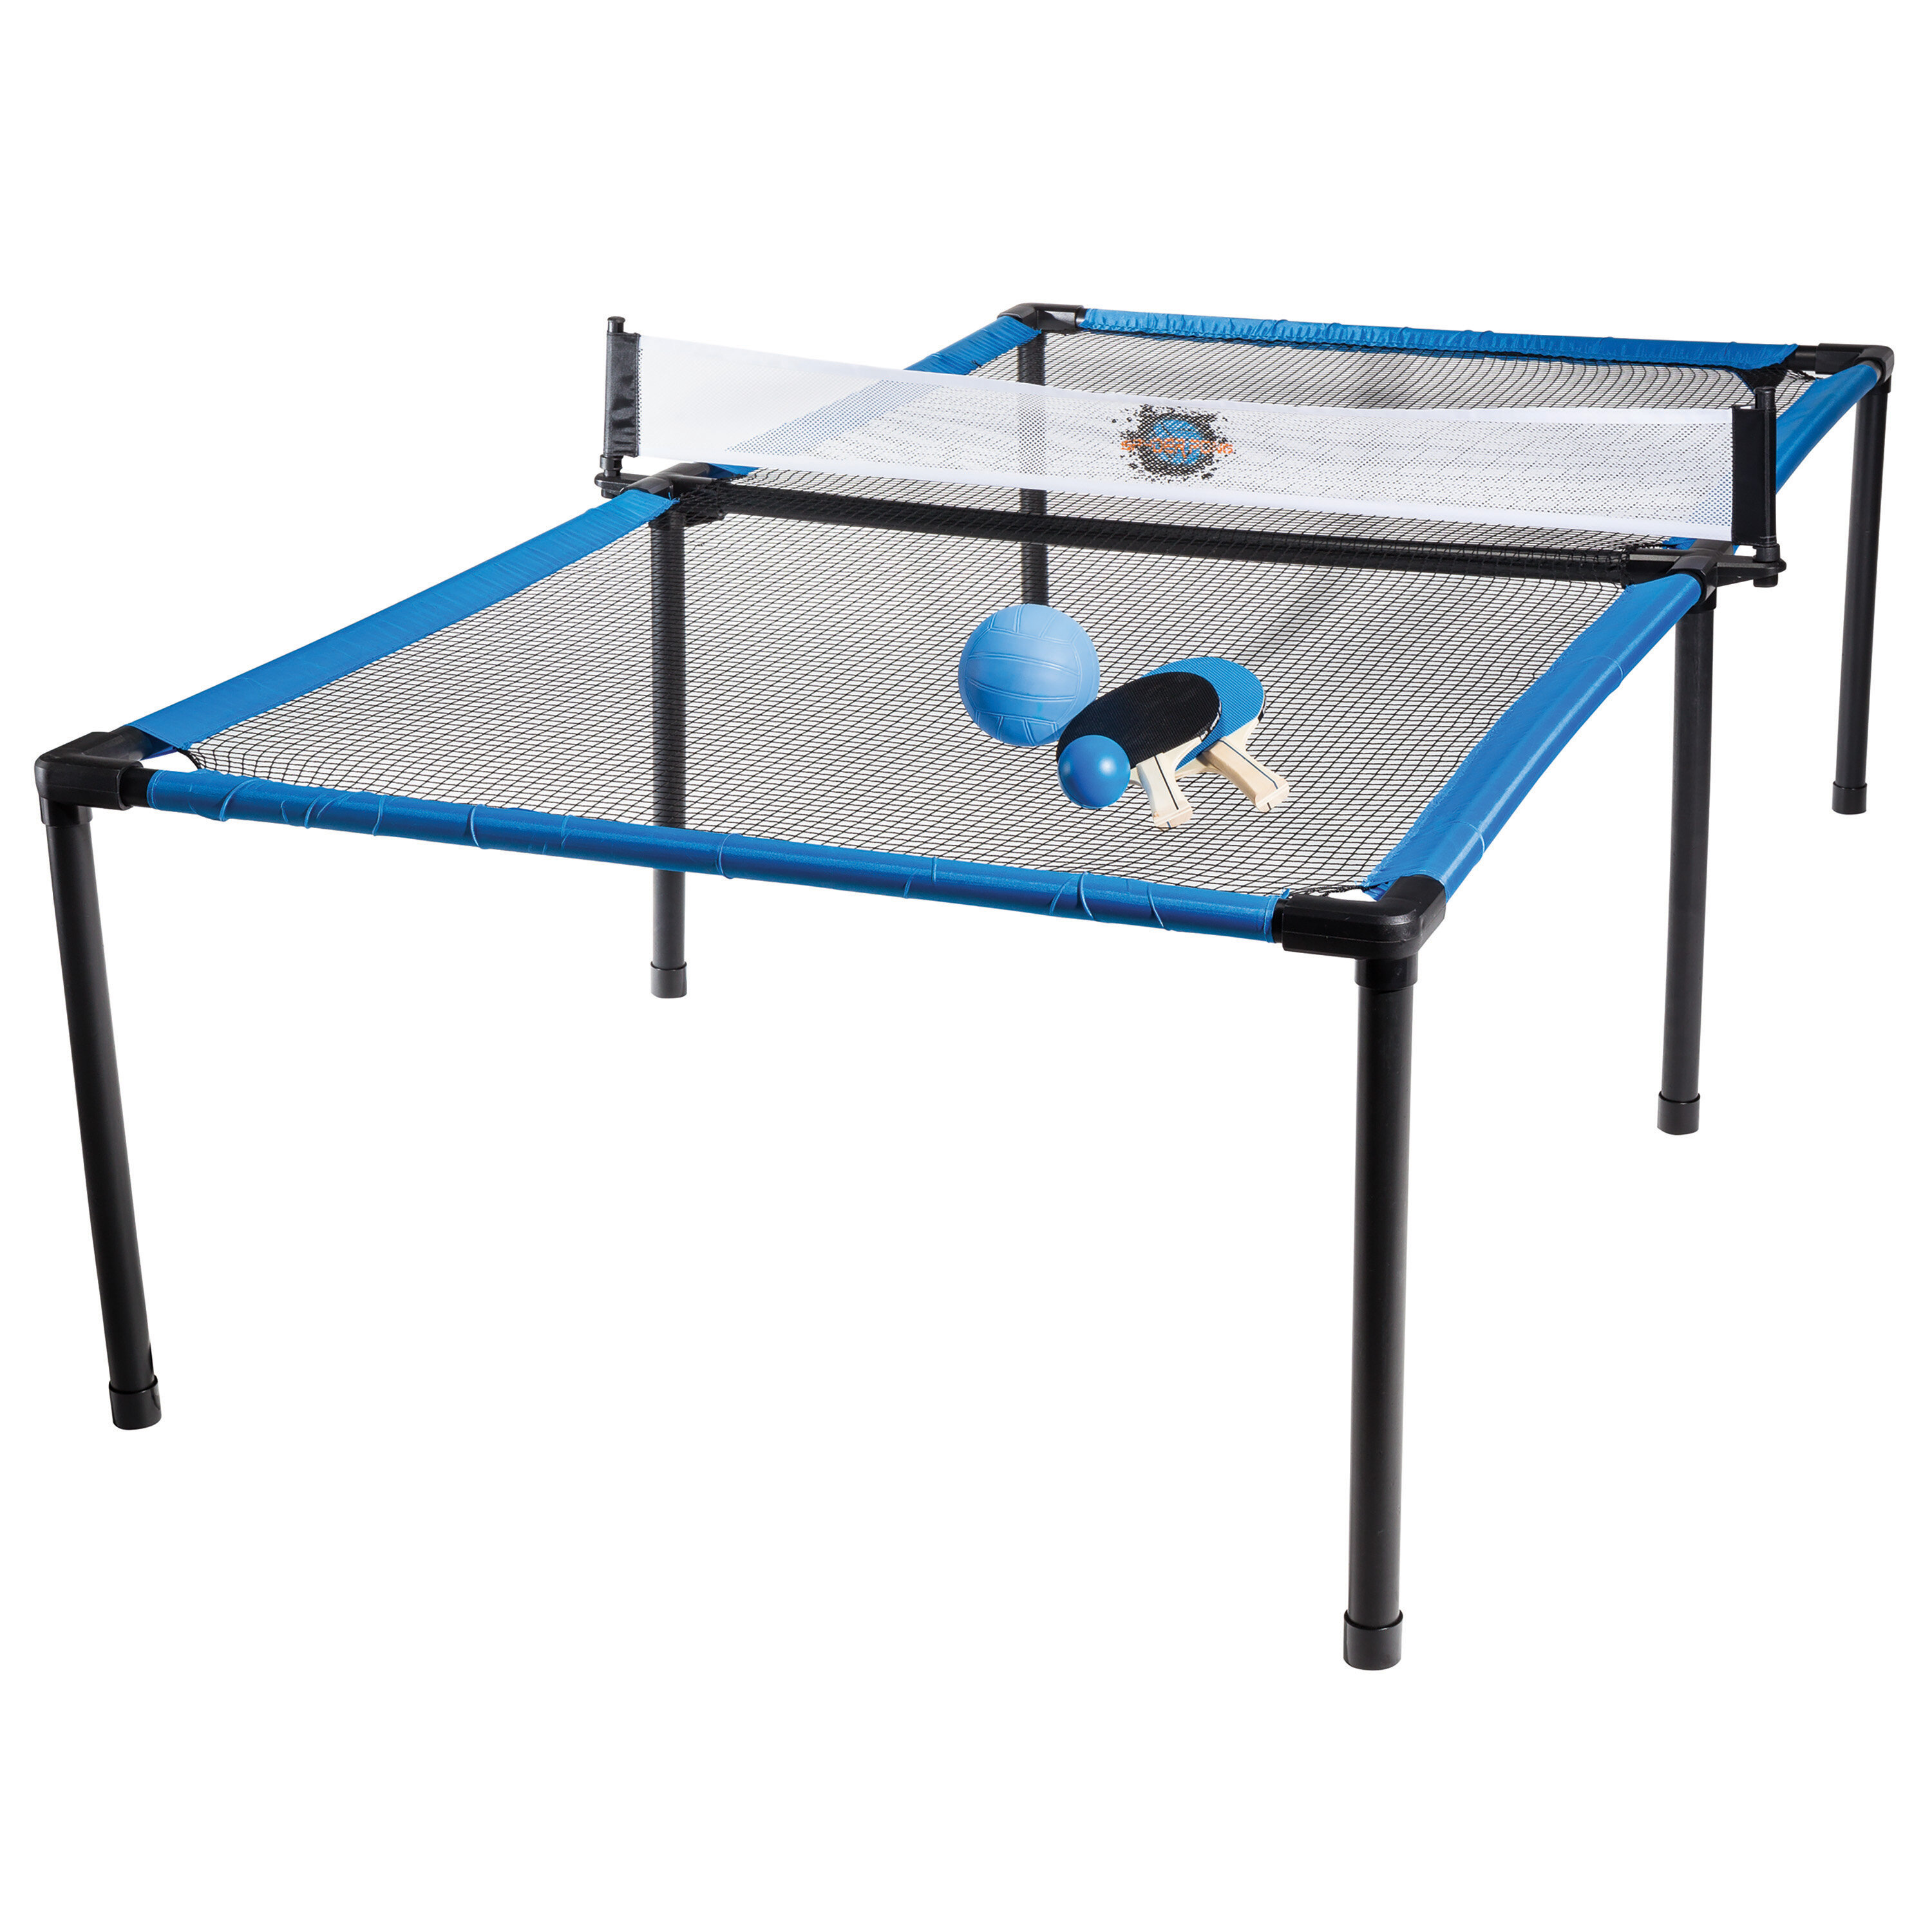 Franklin Sports Foldable Indoor Outdoor Table Tennis Table With Paddles And Balls Reviews Wayfair